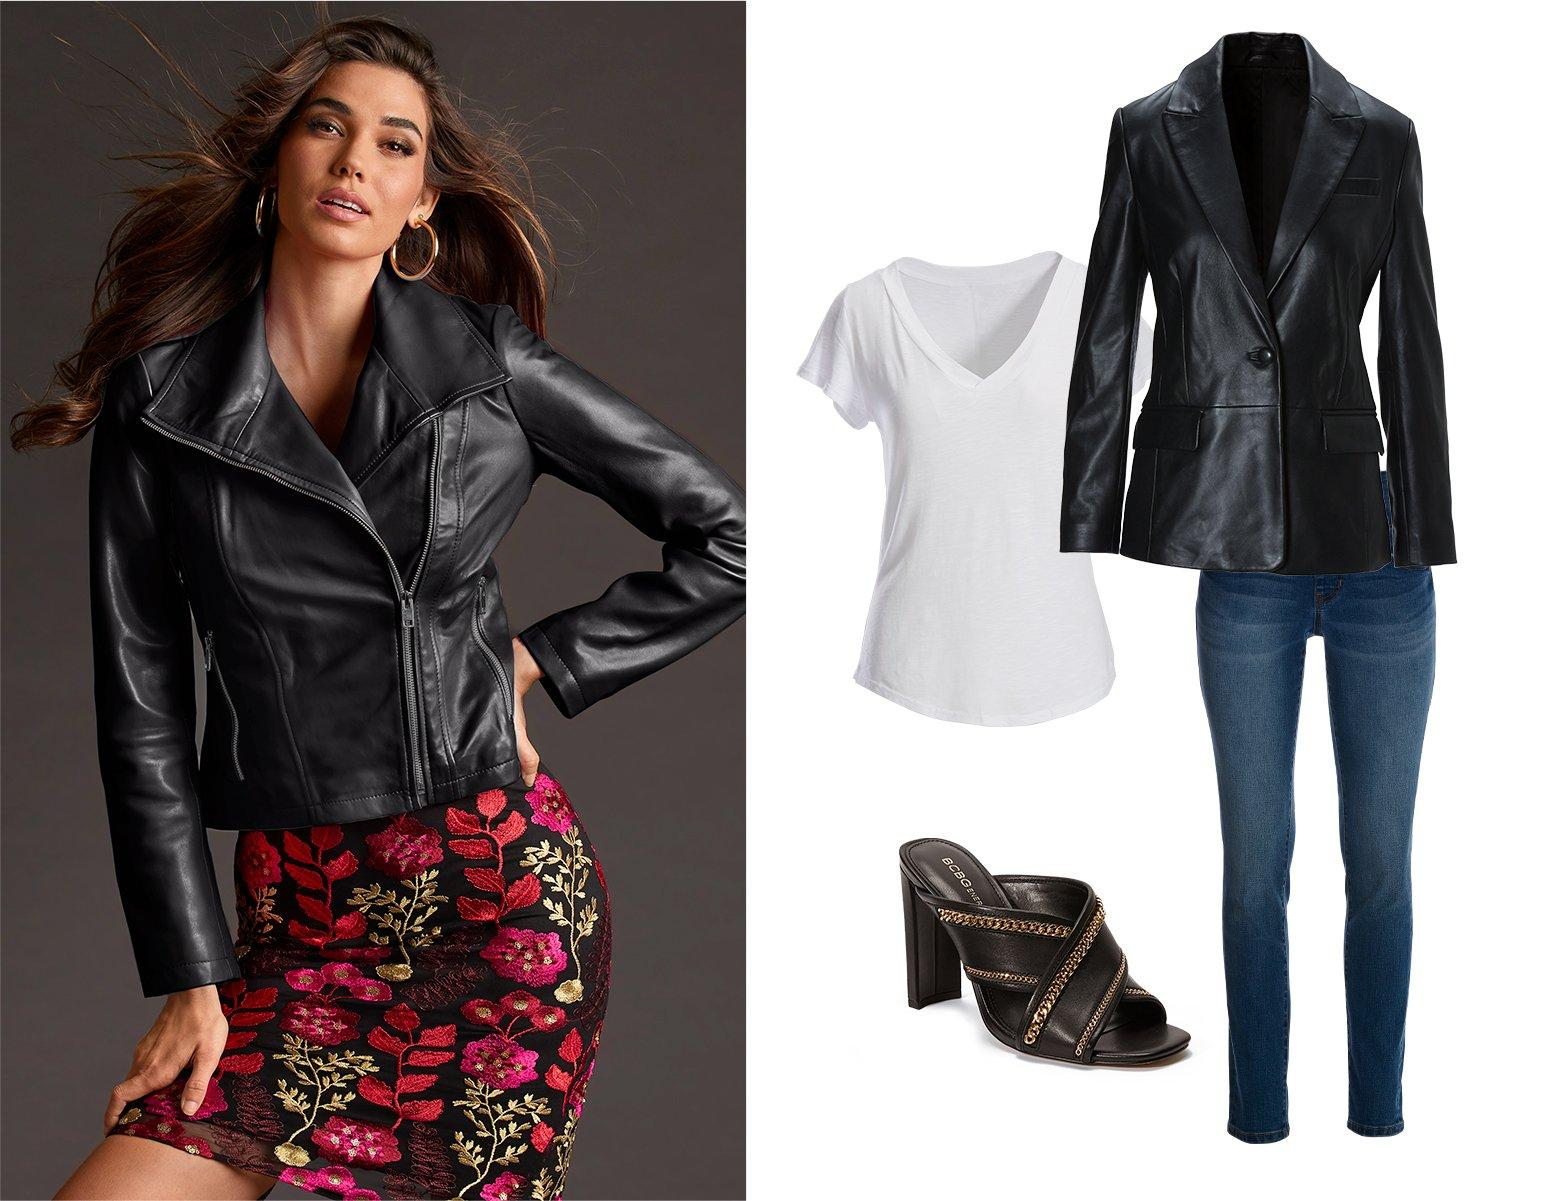 left model wearing a black leather collared jacket over a black floral embroidered sheath dress and gold hoop earrings. right panel shows a black single-button leather blazer, white tee shirt, jeans, and black peep-toe mule heels.